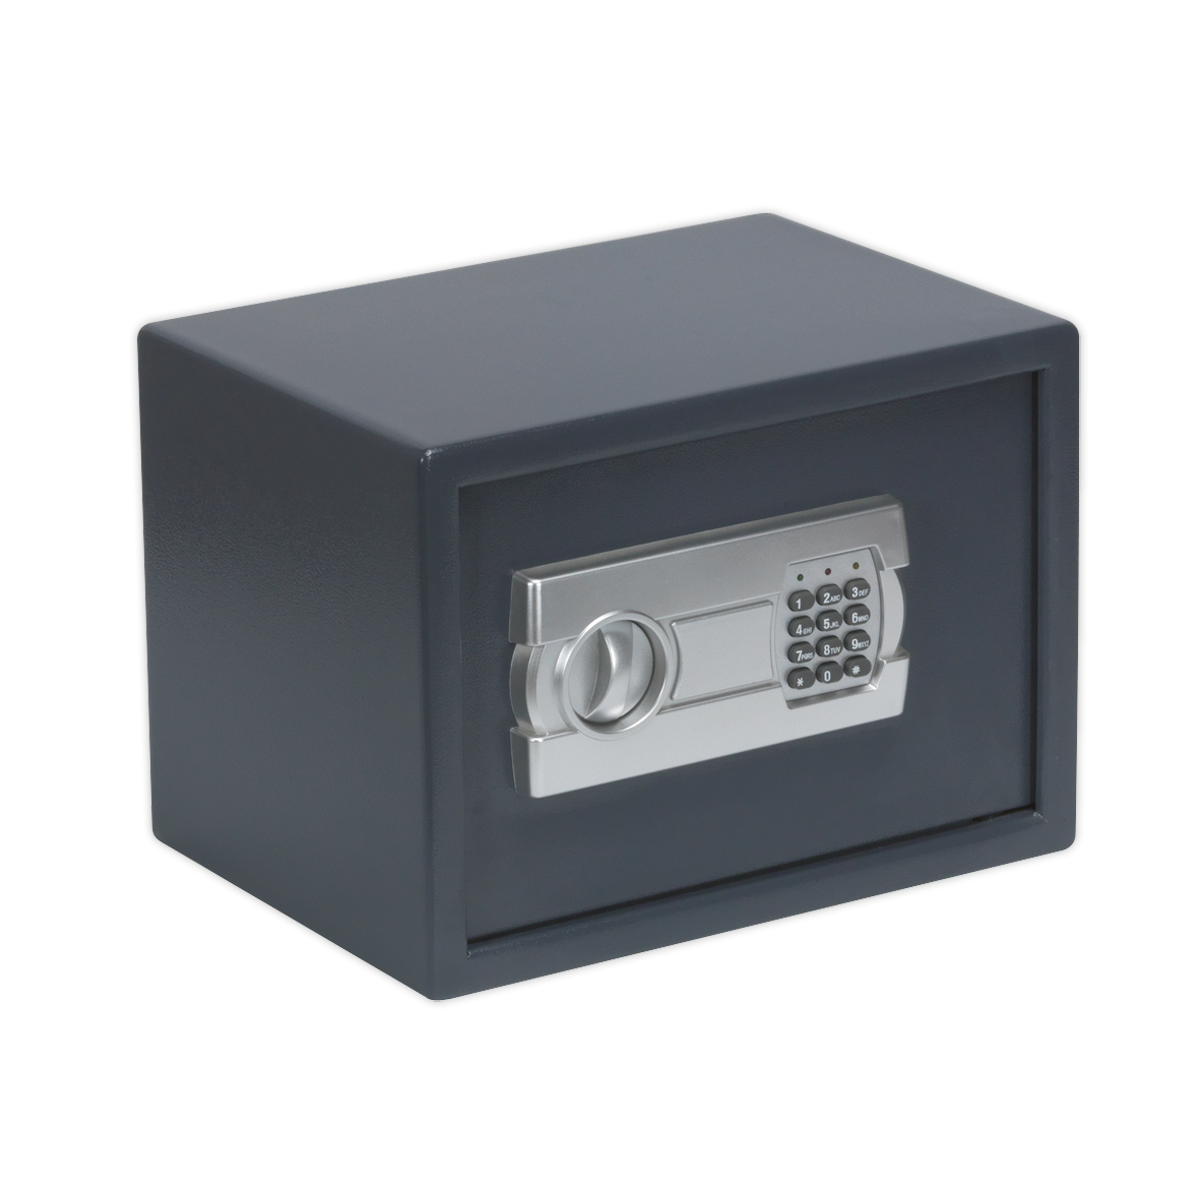 - Electronic Combination Security Safe 350 x 250 x 250mm SEALEY SECS01 by Sealey